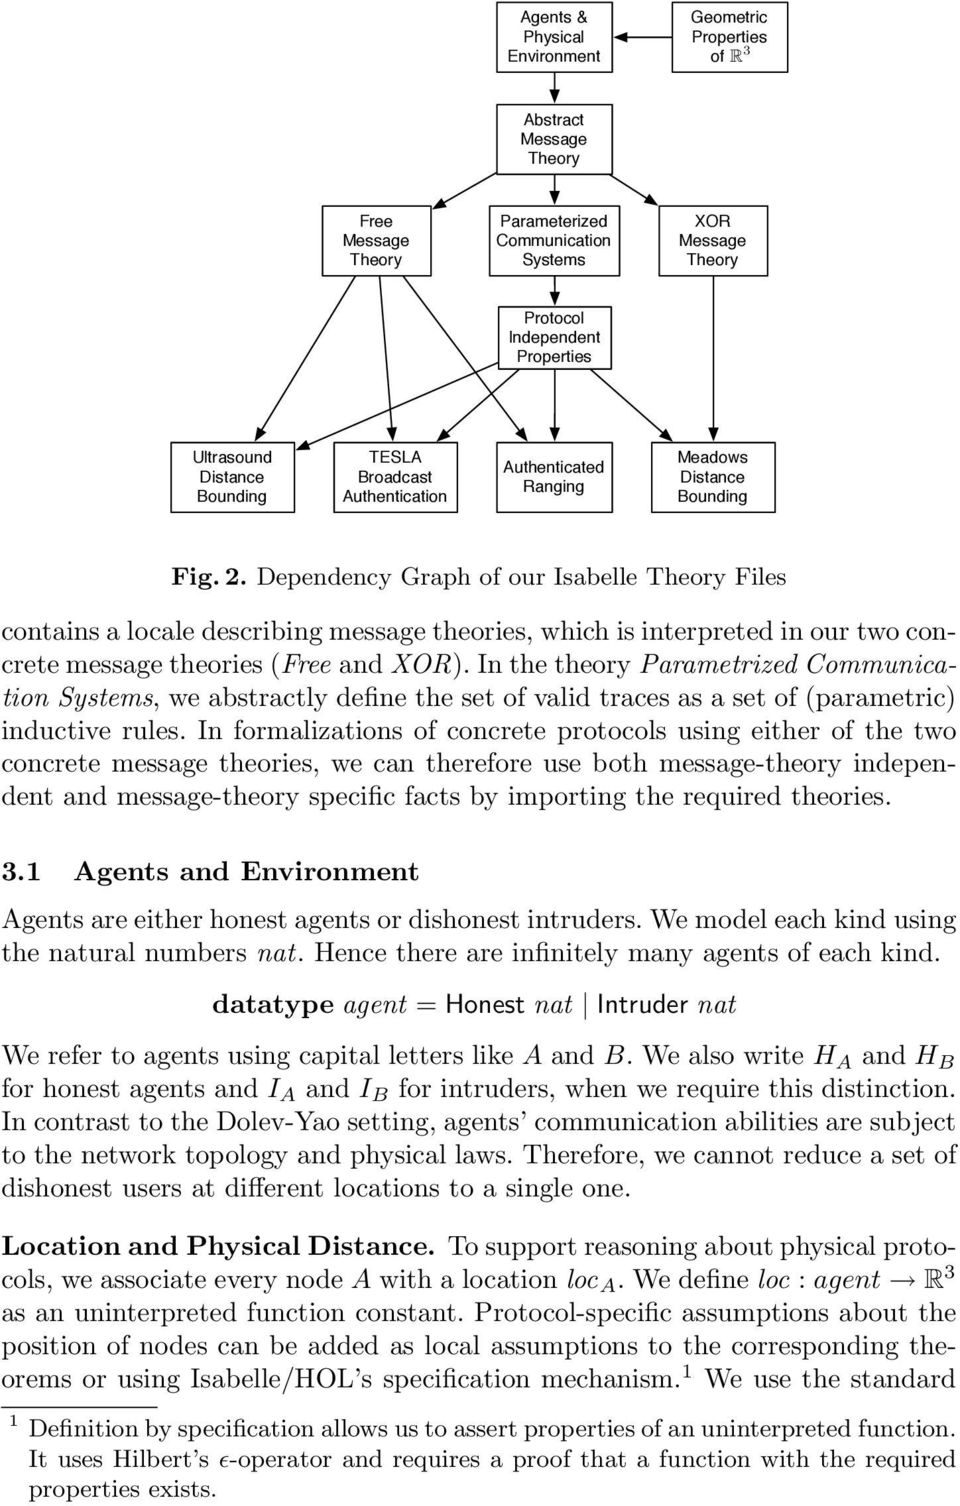 Dependency Graph of our Isabelle Theory Files contains a locale describing message theories, which is interpreted in our two concrete message theories (Free and XOR).